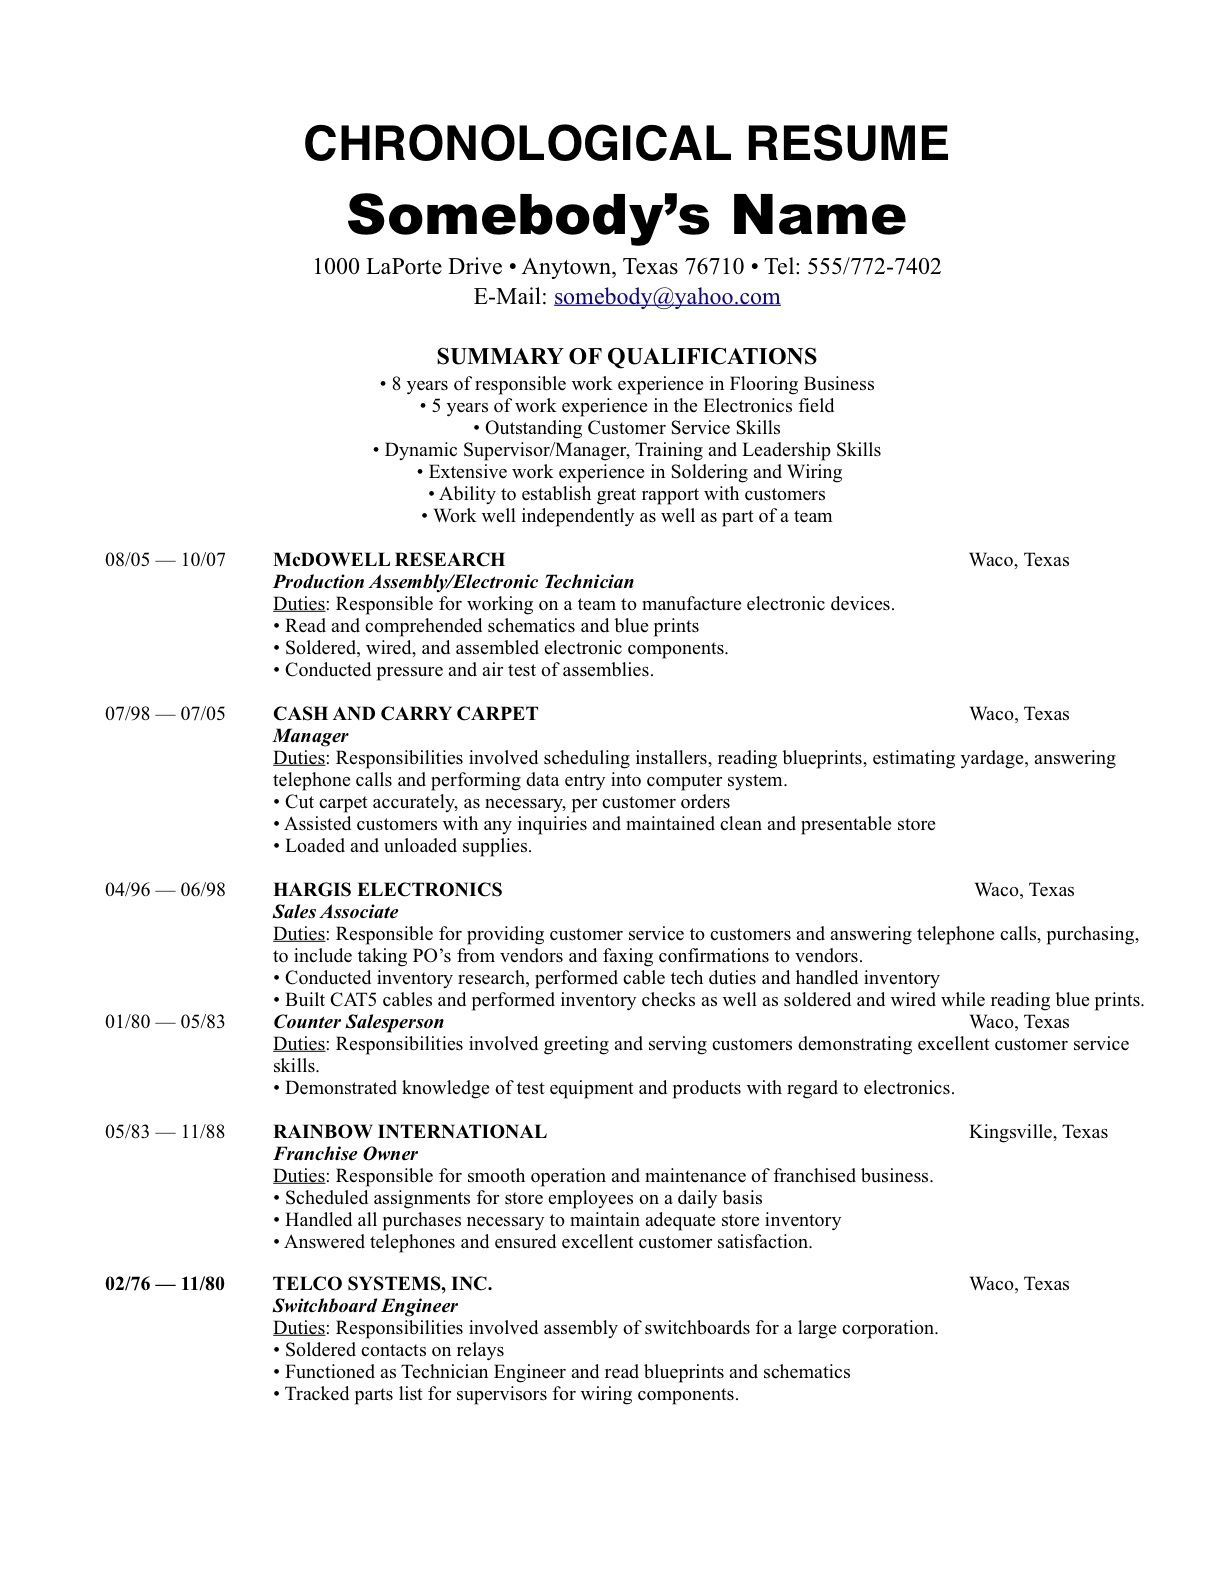 resume format reverse chronological chronological format resume